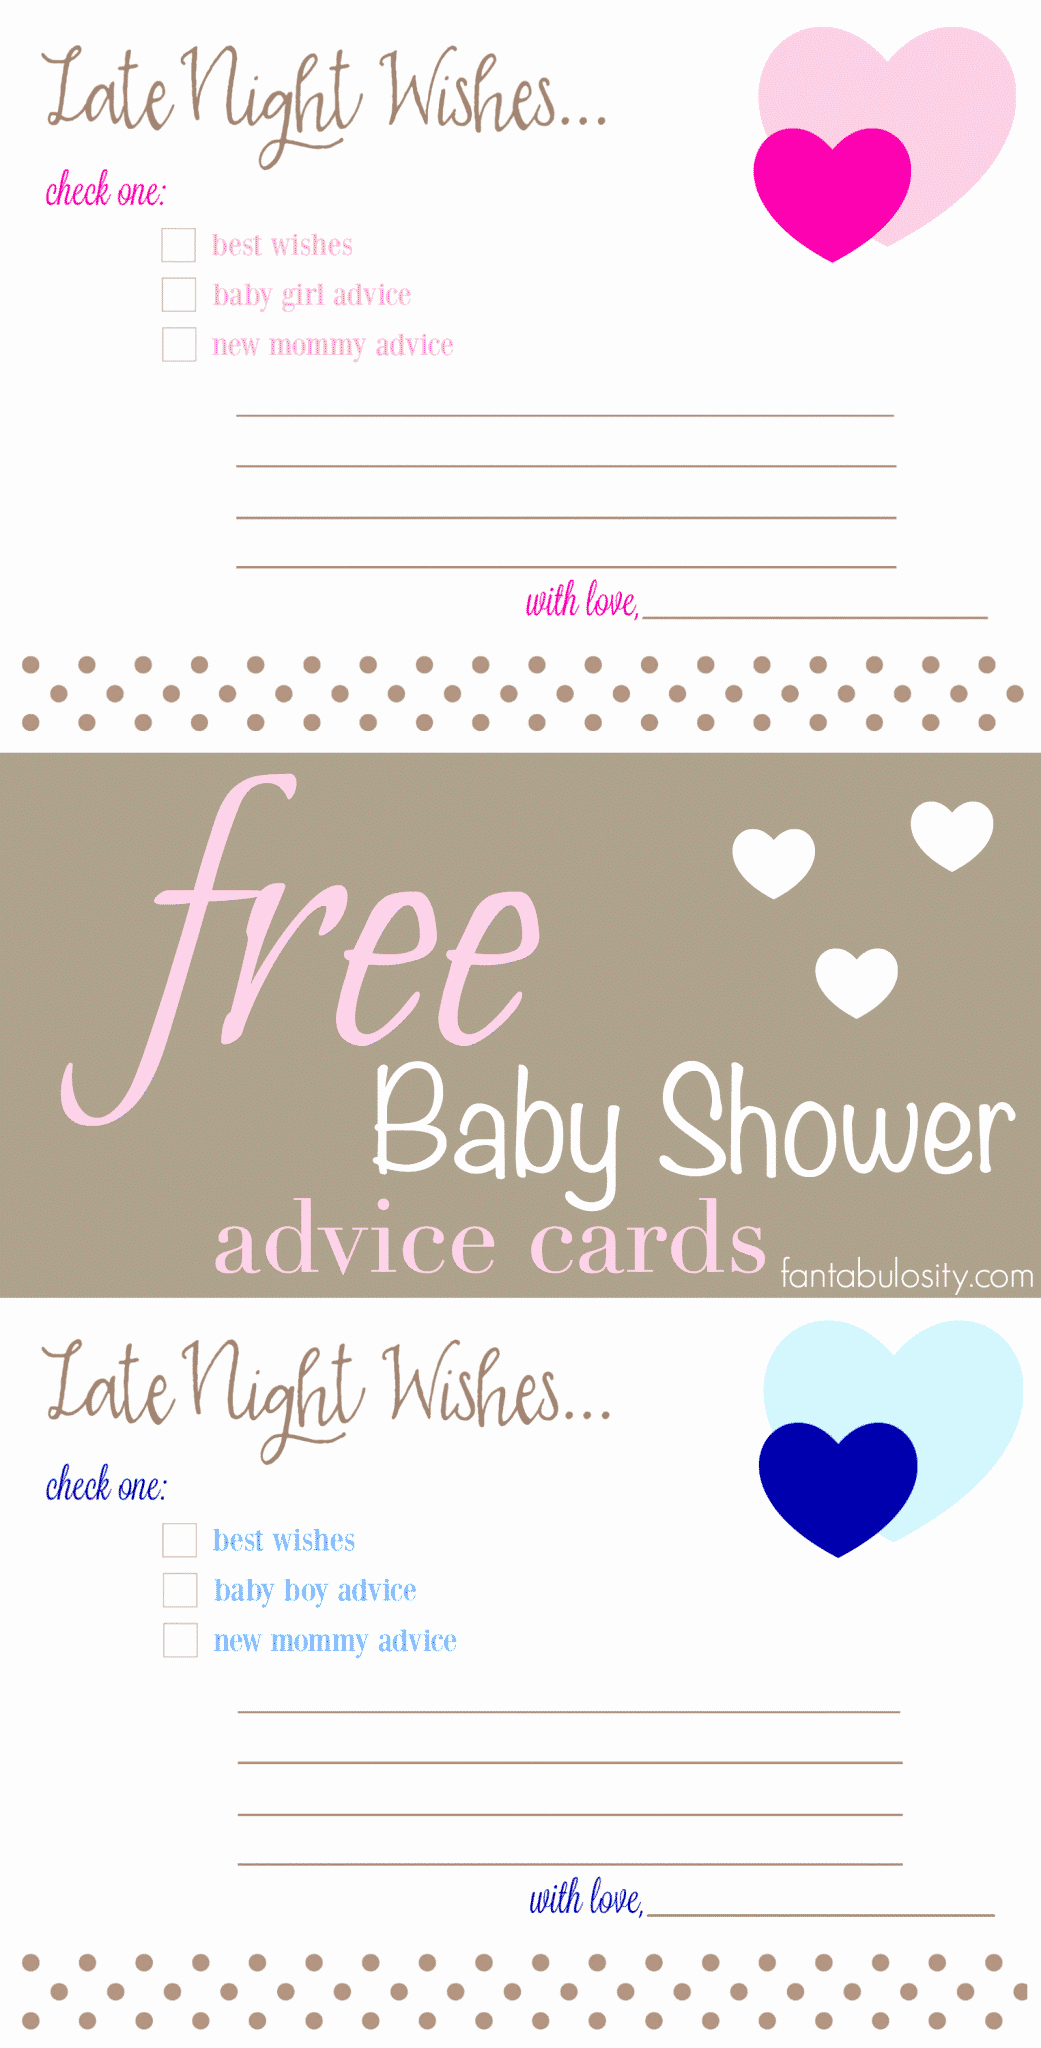 Printable Baby Shower Cards Inspirational Free Printable Baby Shower Advice & Best Wishes Cards